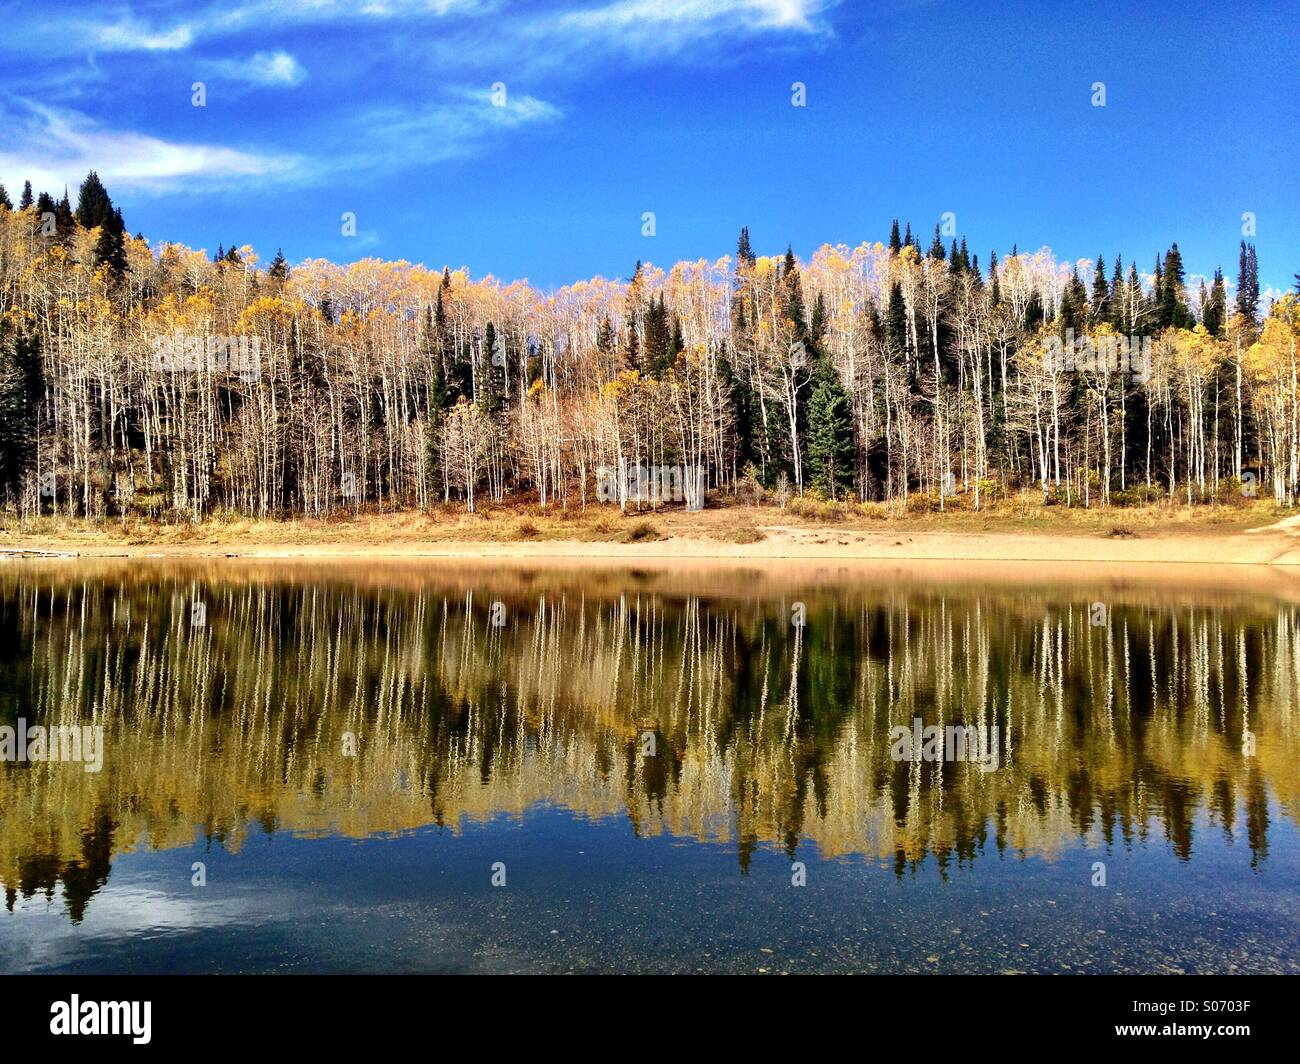 Fall reflections at Dog Lake in the Wasatch Mountains of Salt Lake City, UT. - Stock Image